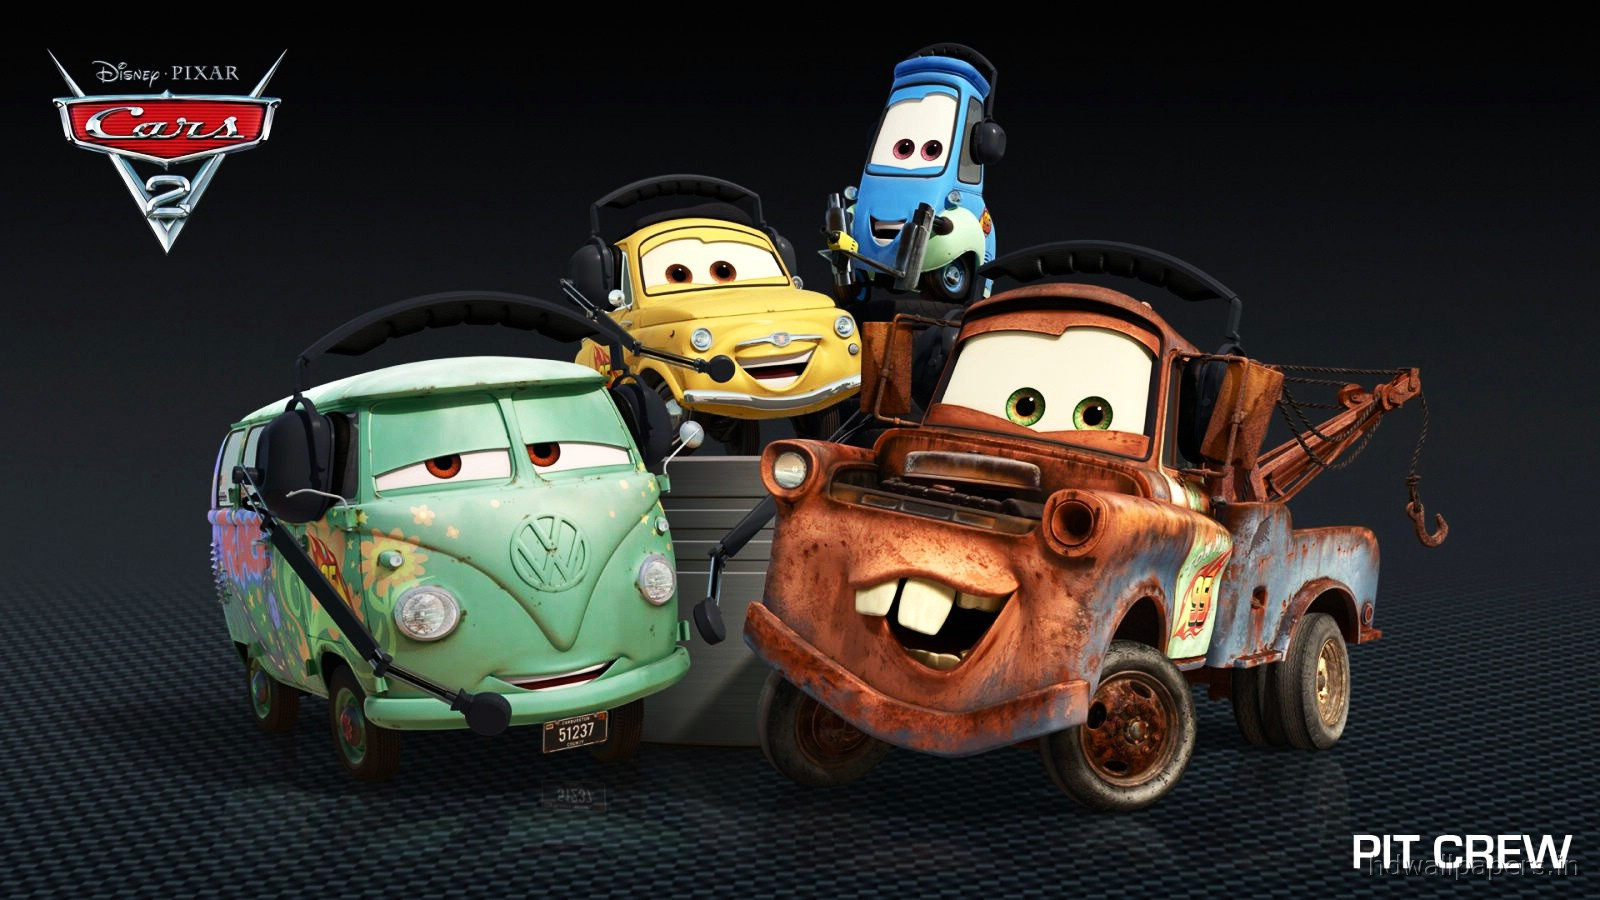 cars disney pixar - photo #19